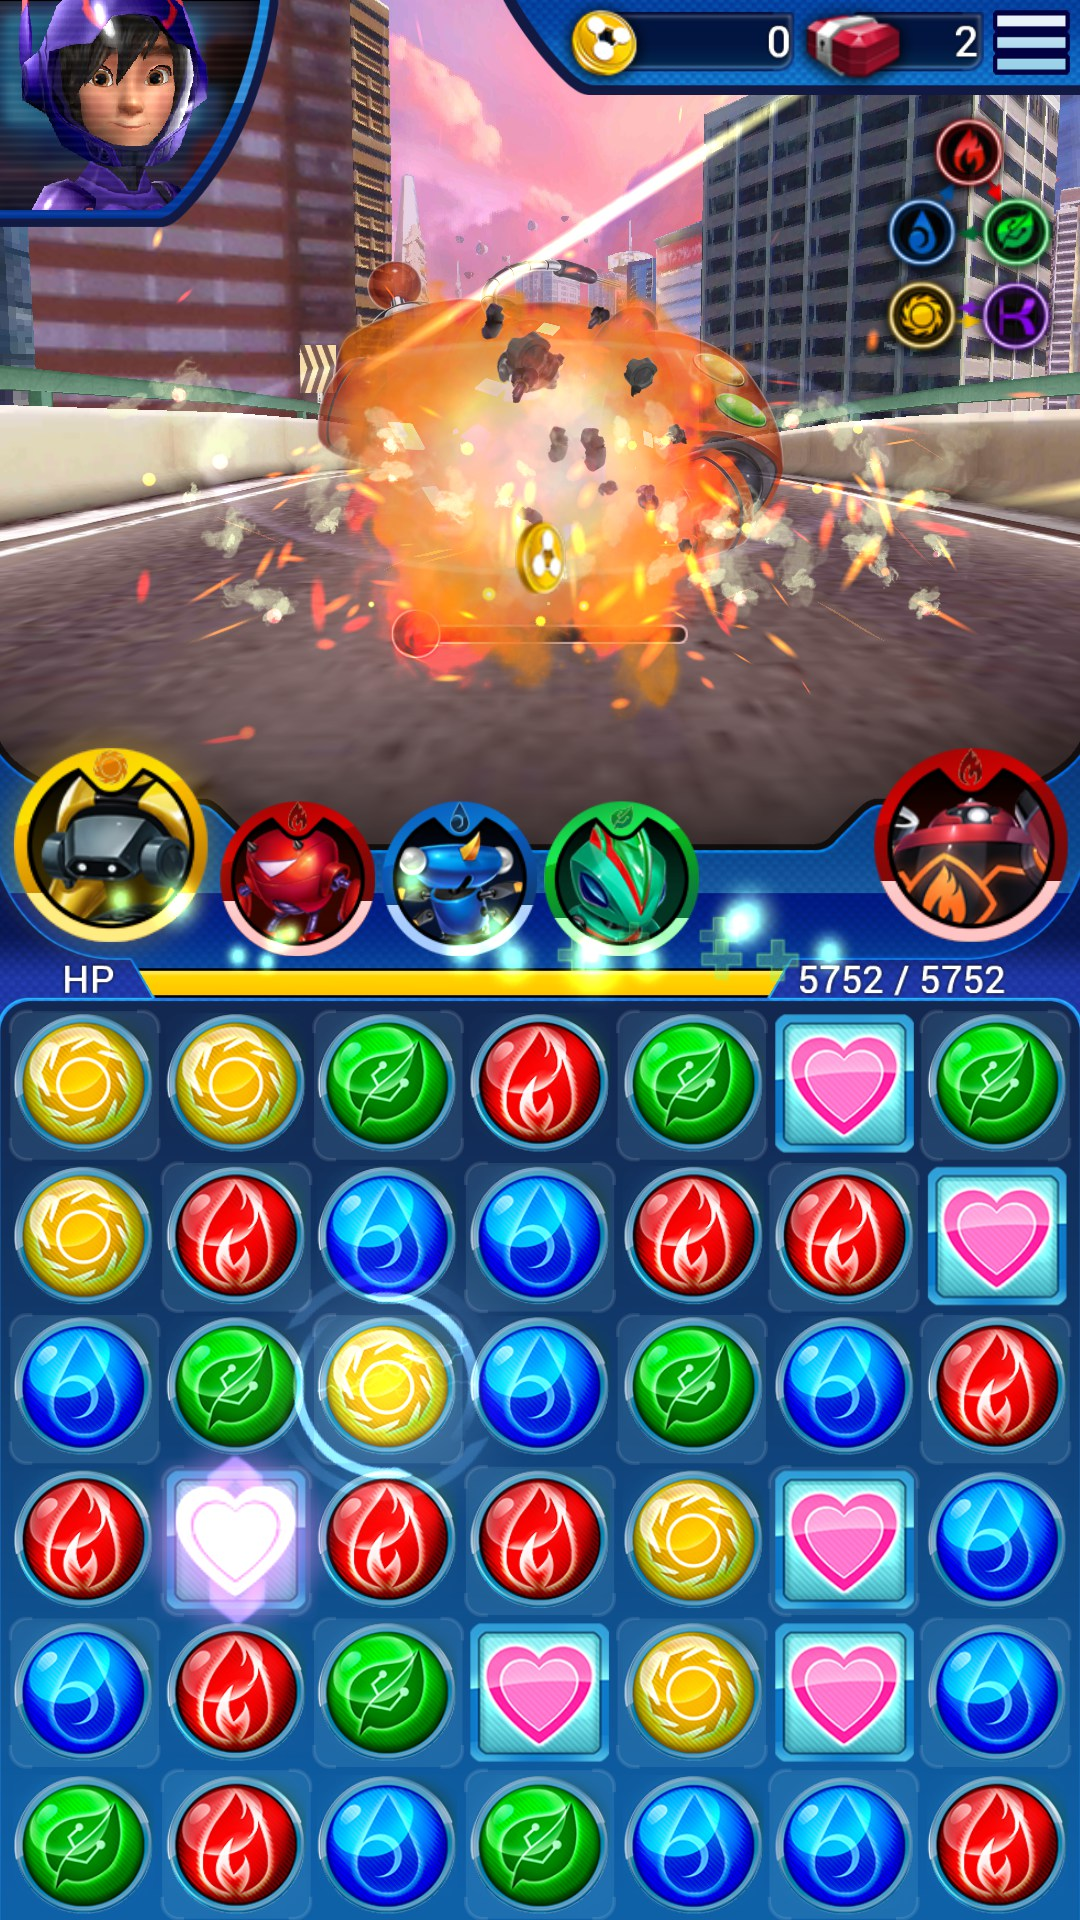 Big Hero 6 for Android - APK Download - APKPure.com